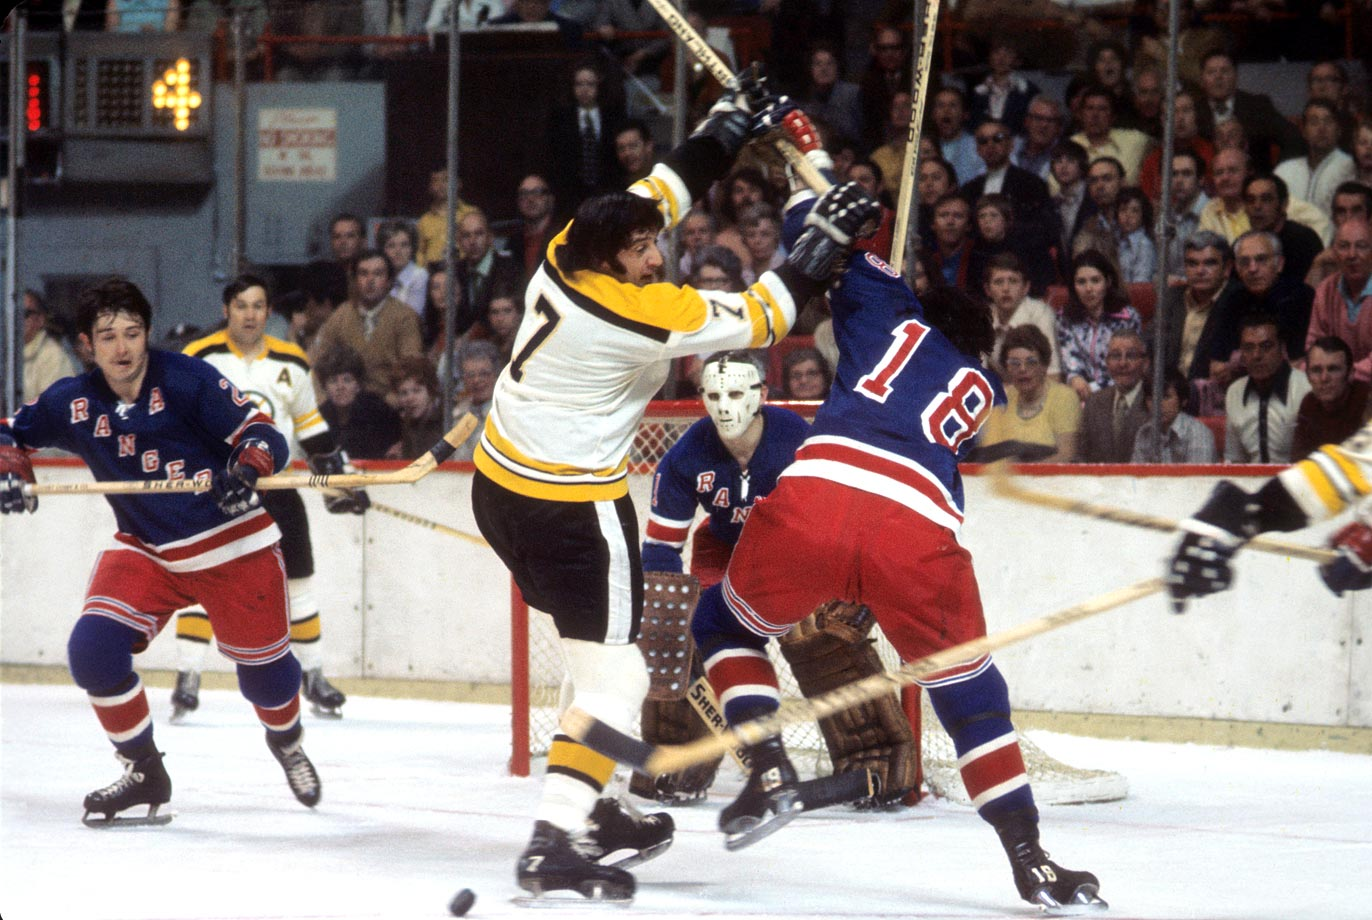 It's no wonder that Boston's Phil Esposito was targeted by New York Rangers checking forward Walt Tkaczuk during Game 1. The Bruins superstar was following up an Art Ross-winning campaign with a strong postseason that saw him tie for the league lead in goals (9 in 15 games) and points (24). The Bruins captured the opener, 6-5, and went on to win the series in six games.